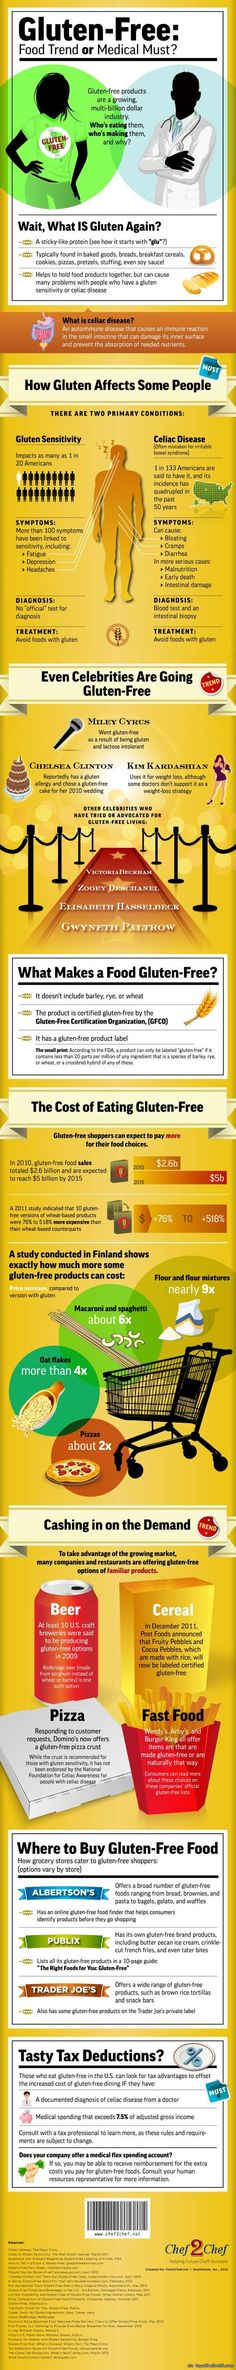 Gluten-Free: Food Trend or Medical Must? Important to read!